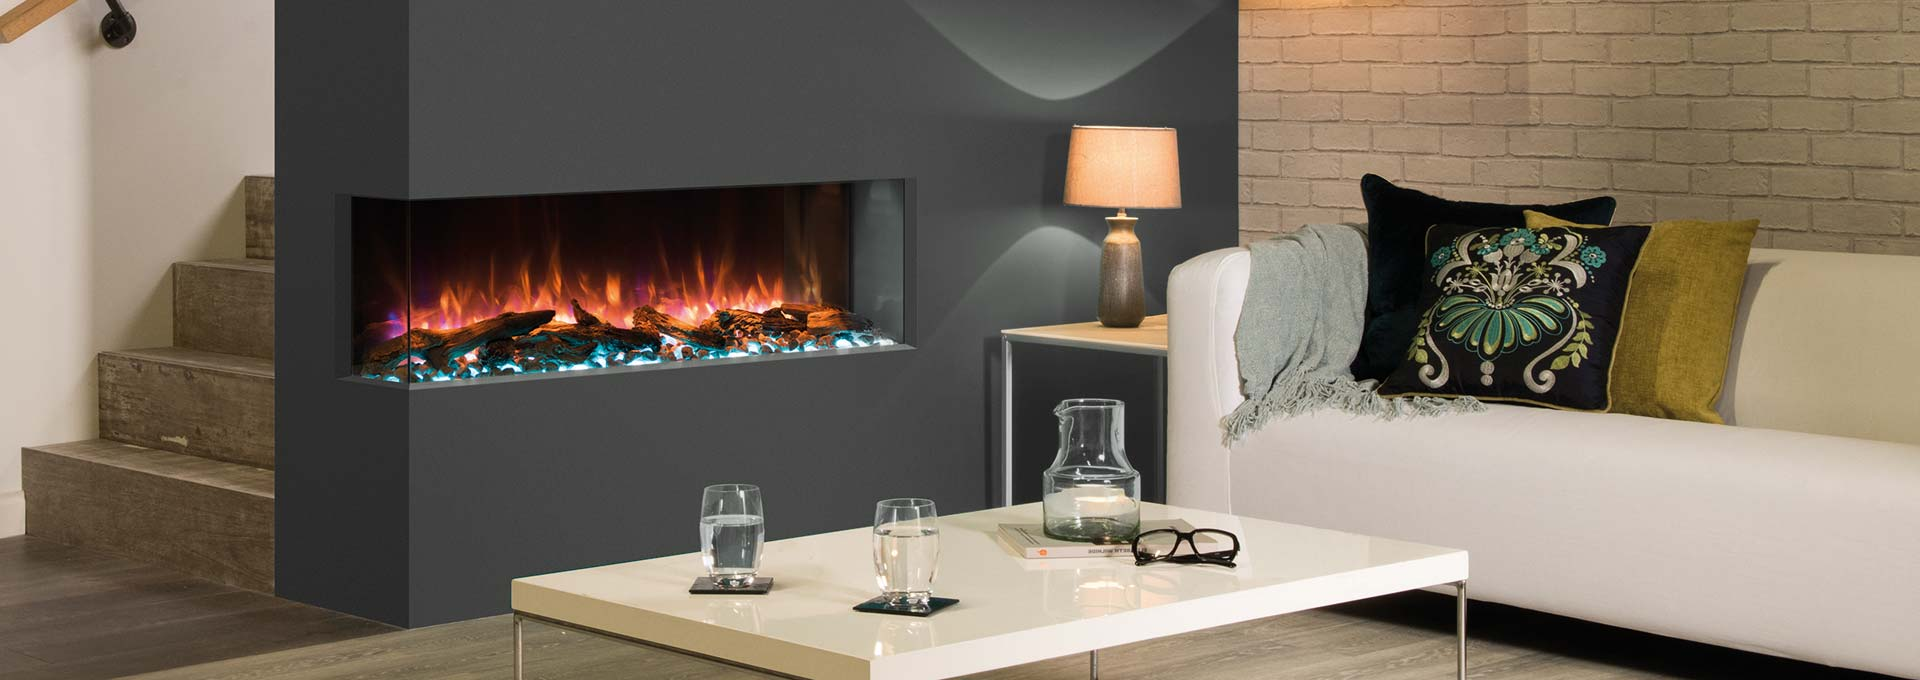 Modern Electric Fireplaces Built In Wall Mounted Electric